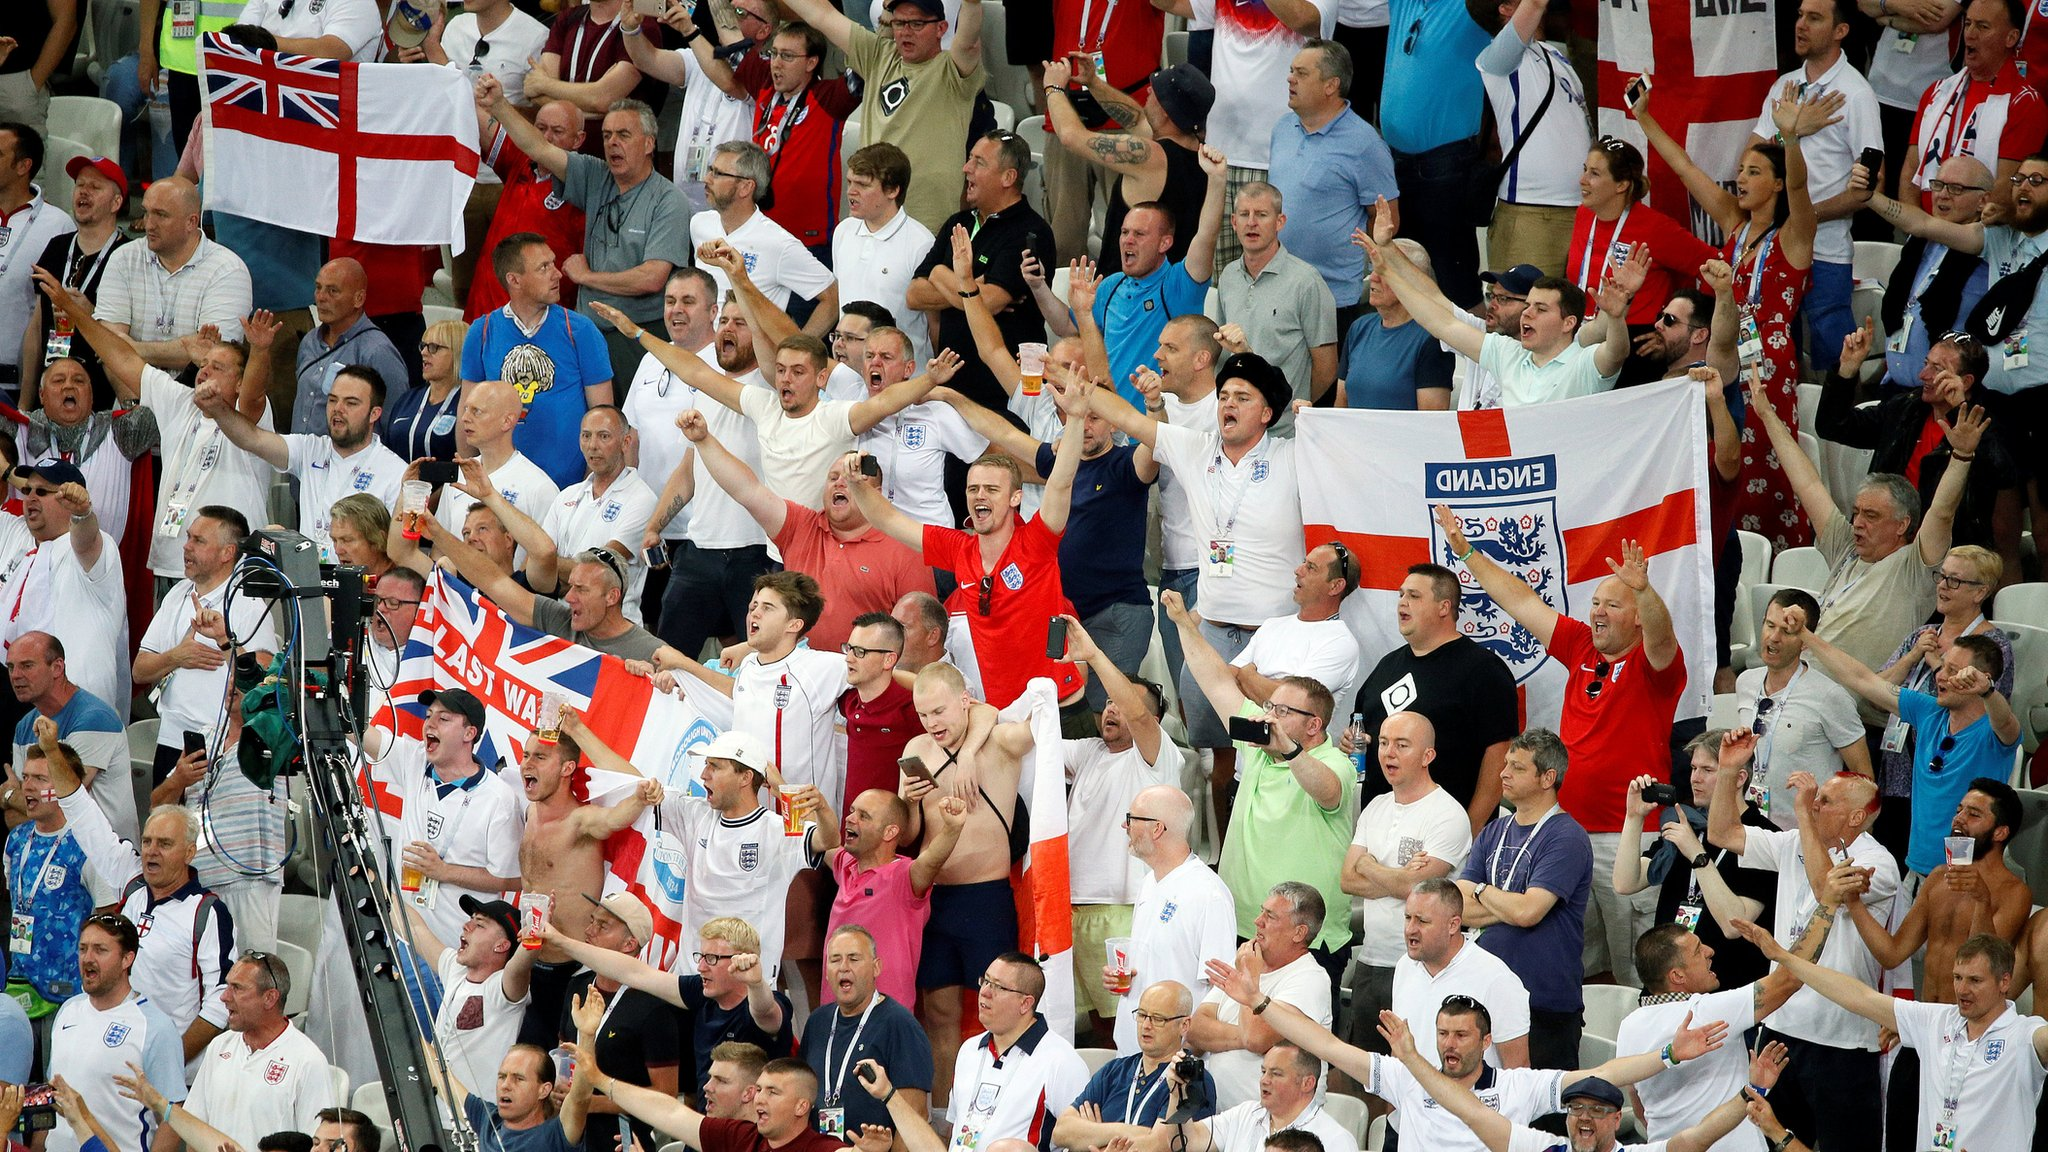 World Cup 2018: FA condemns England fans' anti-Semitic chants